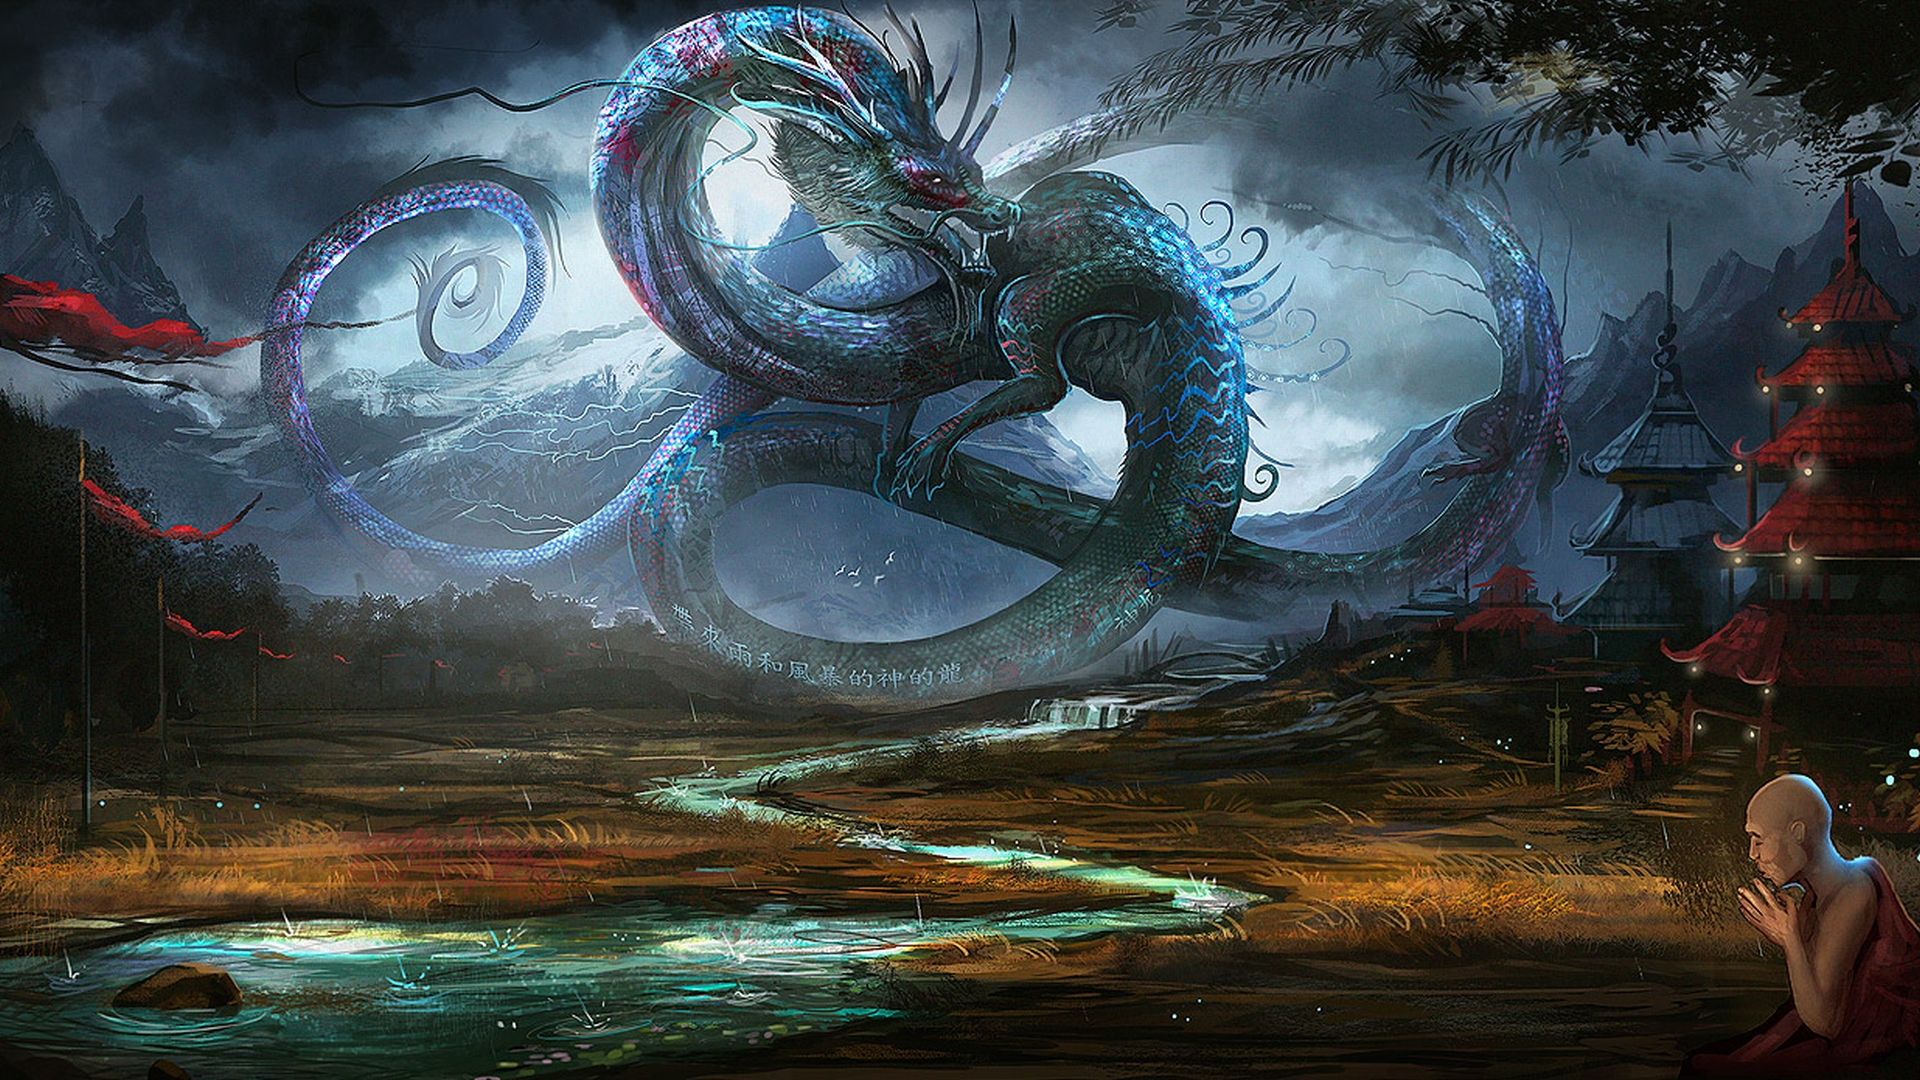 Free and Stunning Dragon Wallpaper Collection